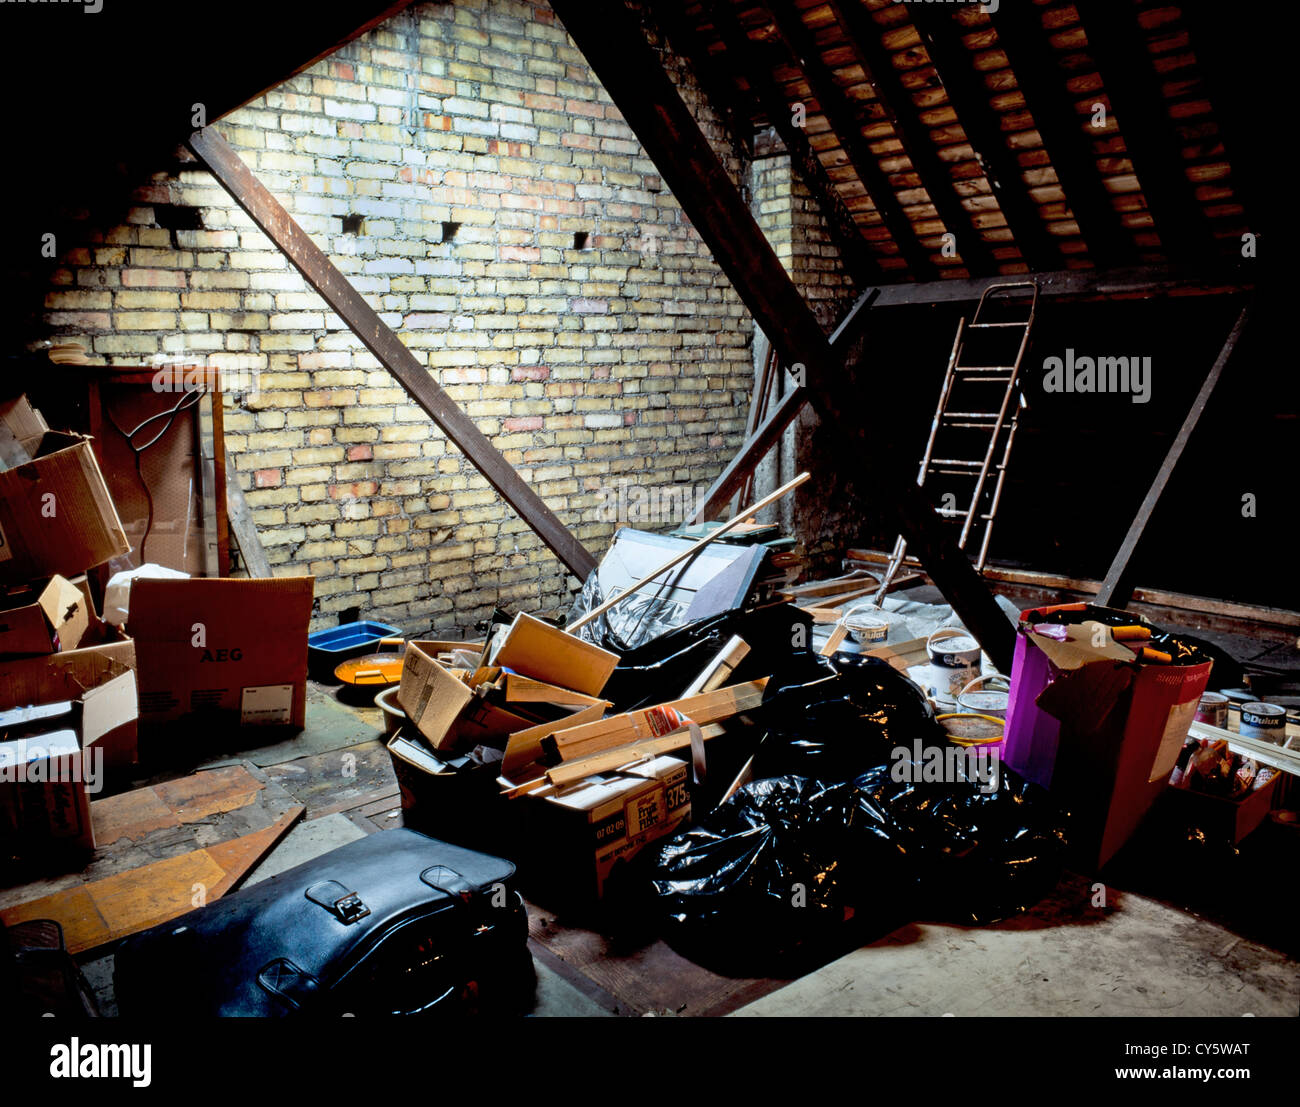 UNCONVERTED LOFT OR ATTIC SPACE - Stock Image